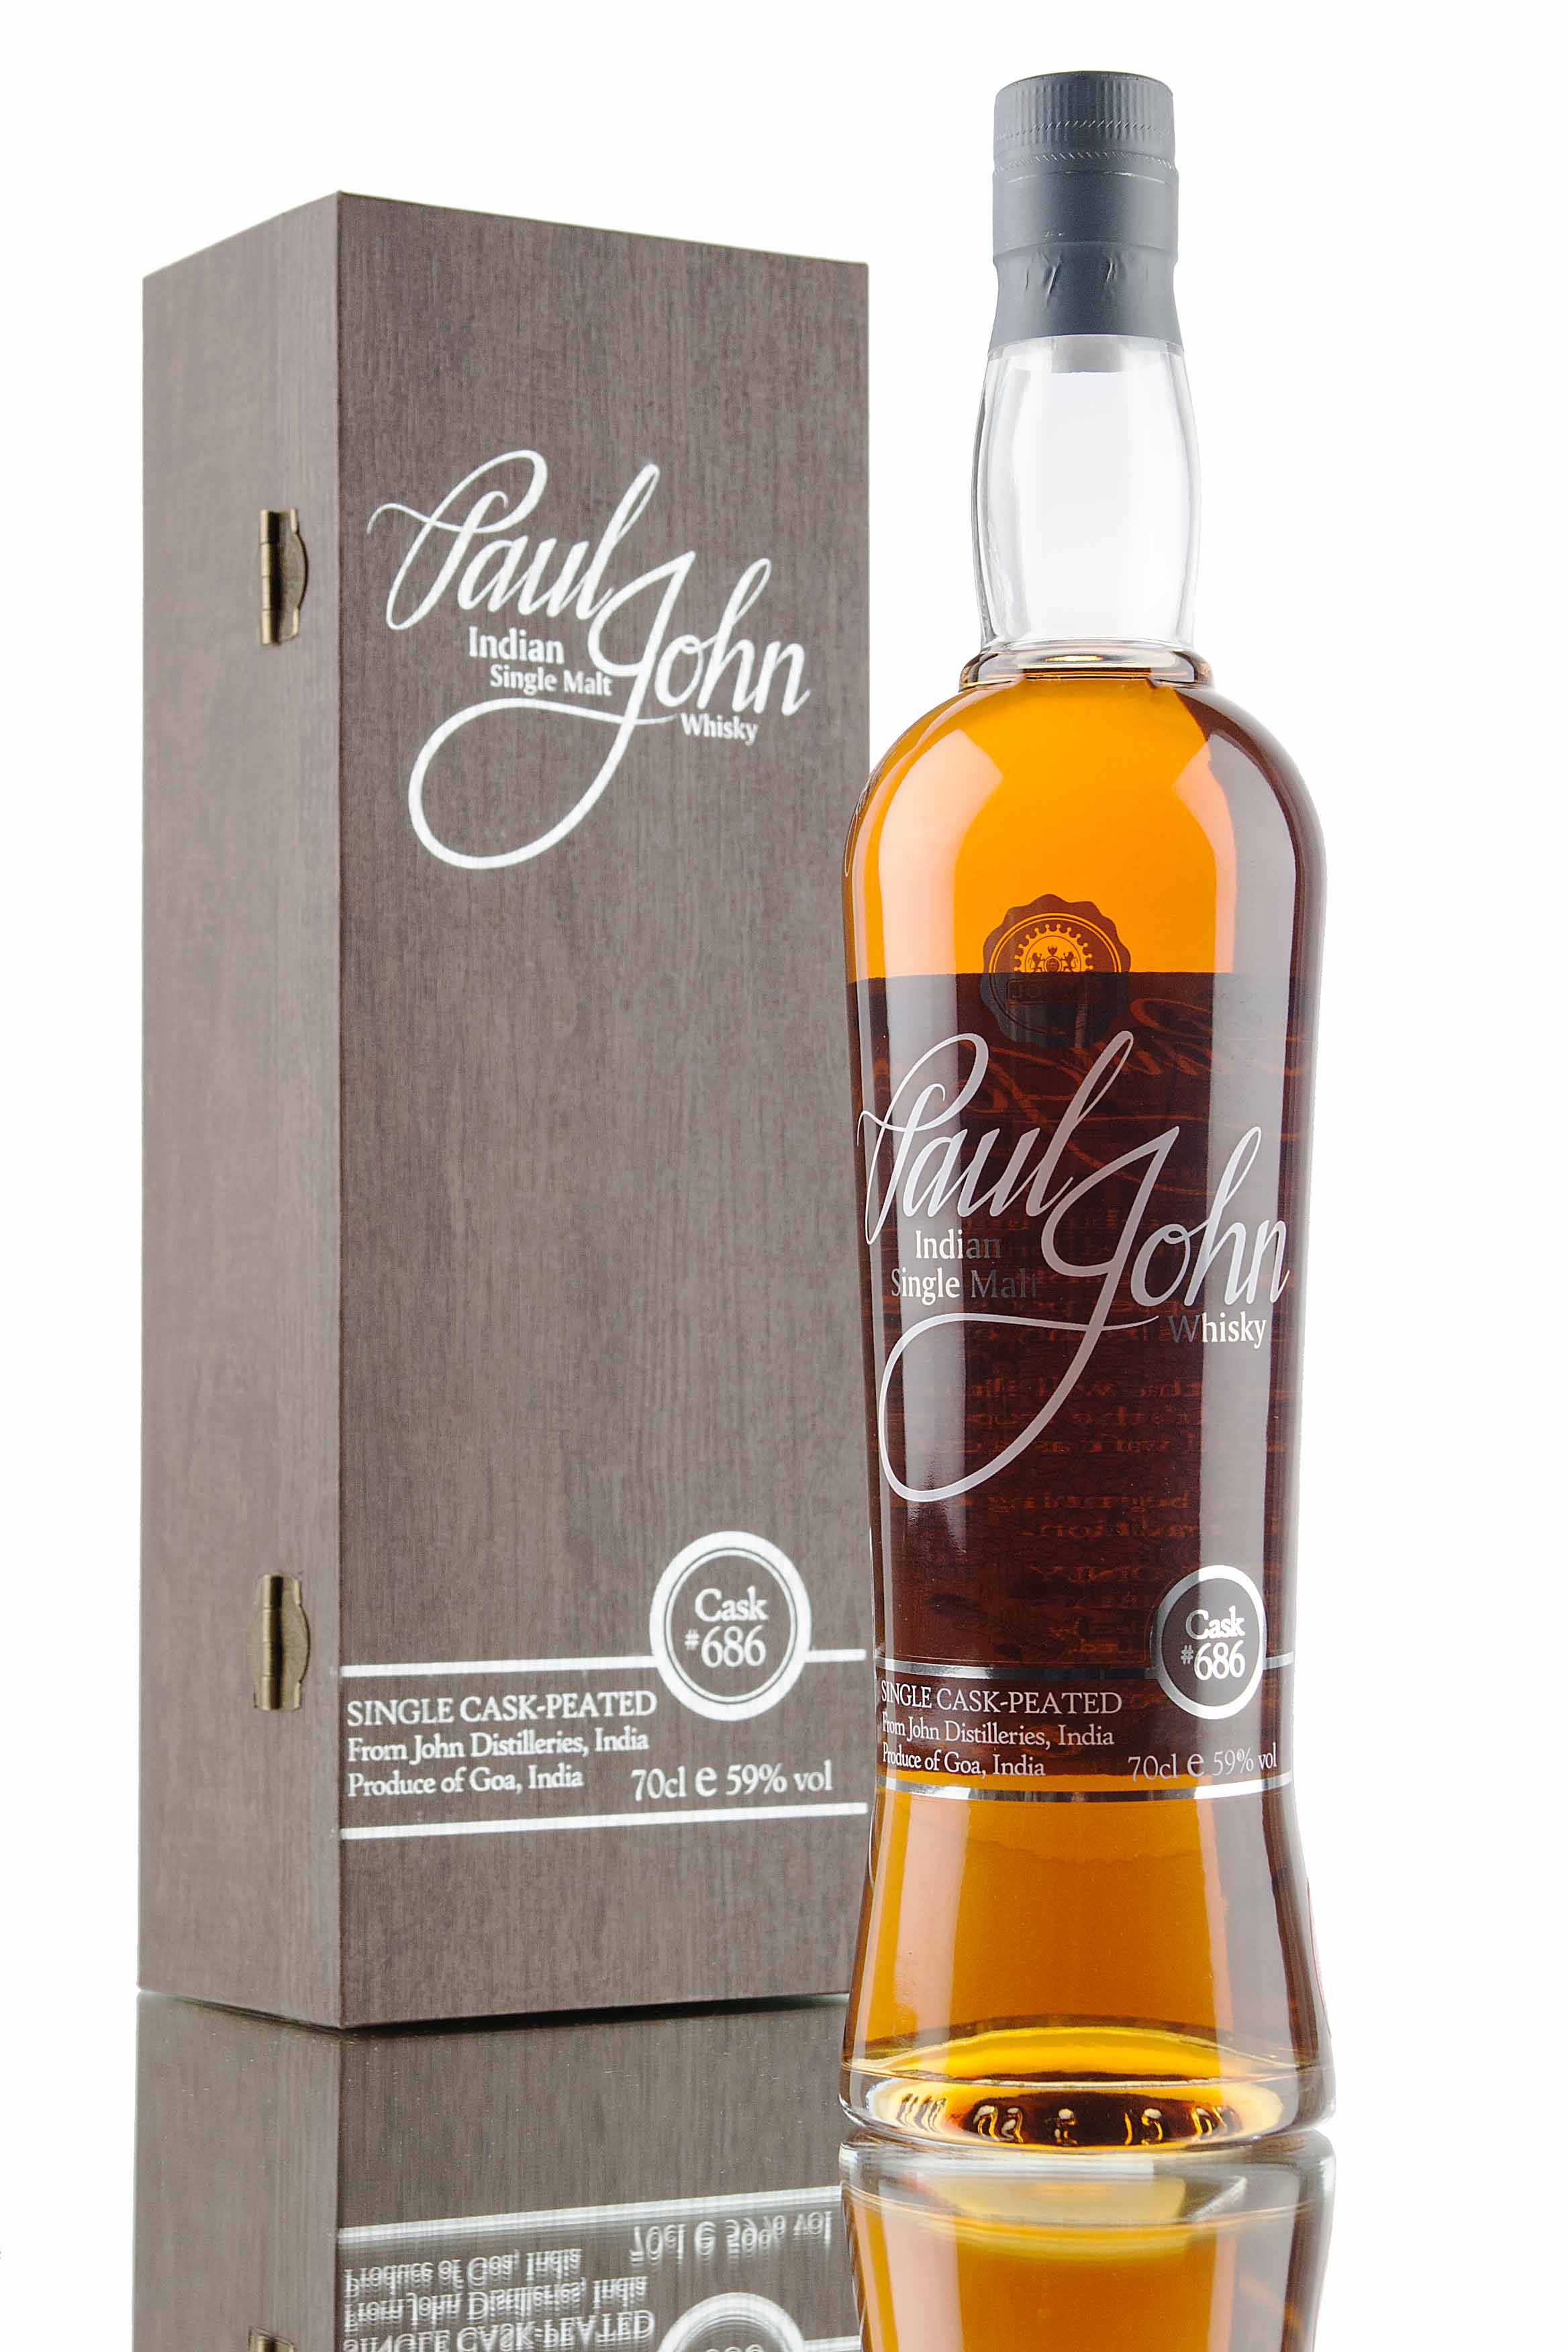 Paul John Single Cask #686 (Peated)